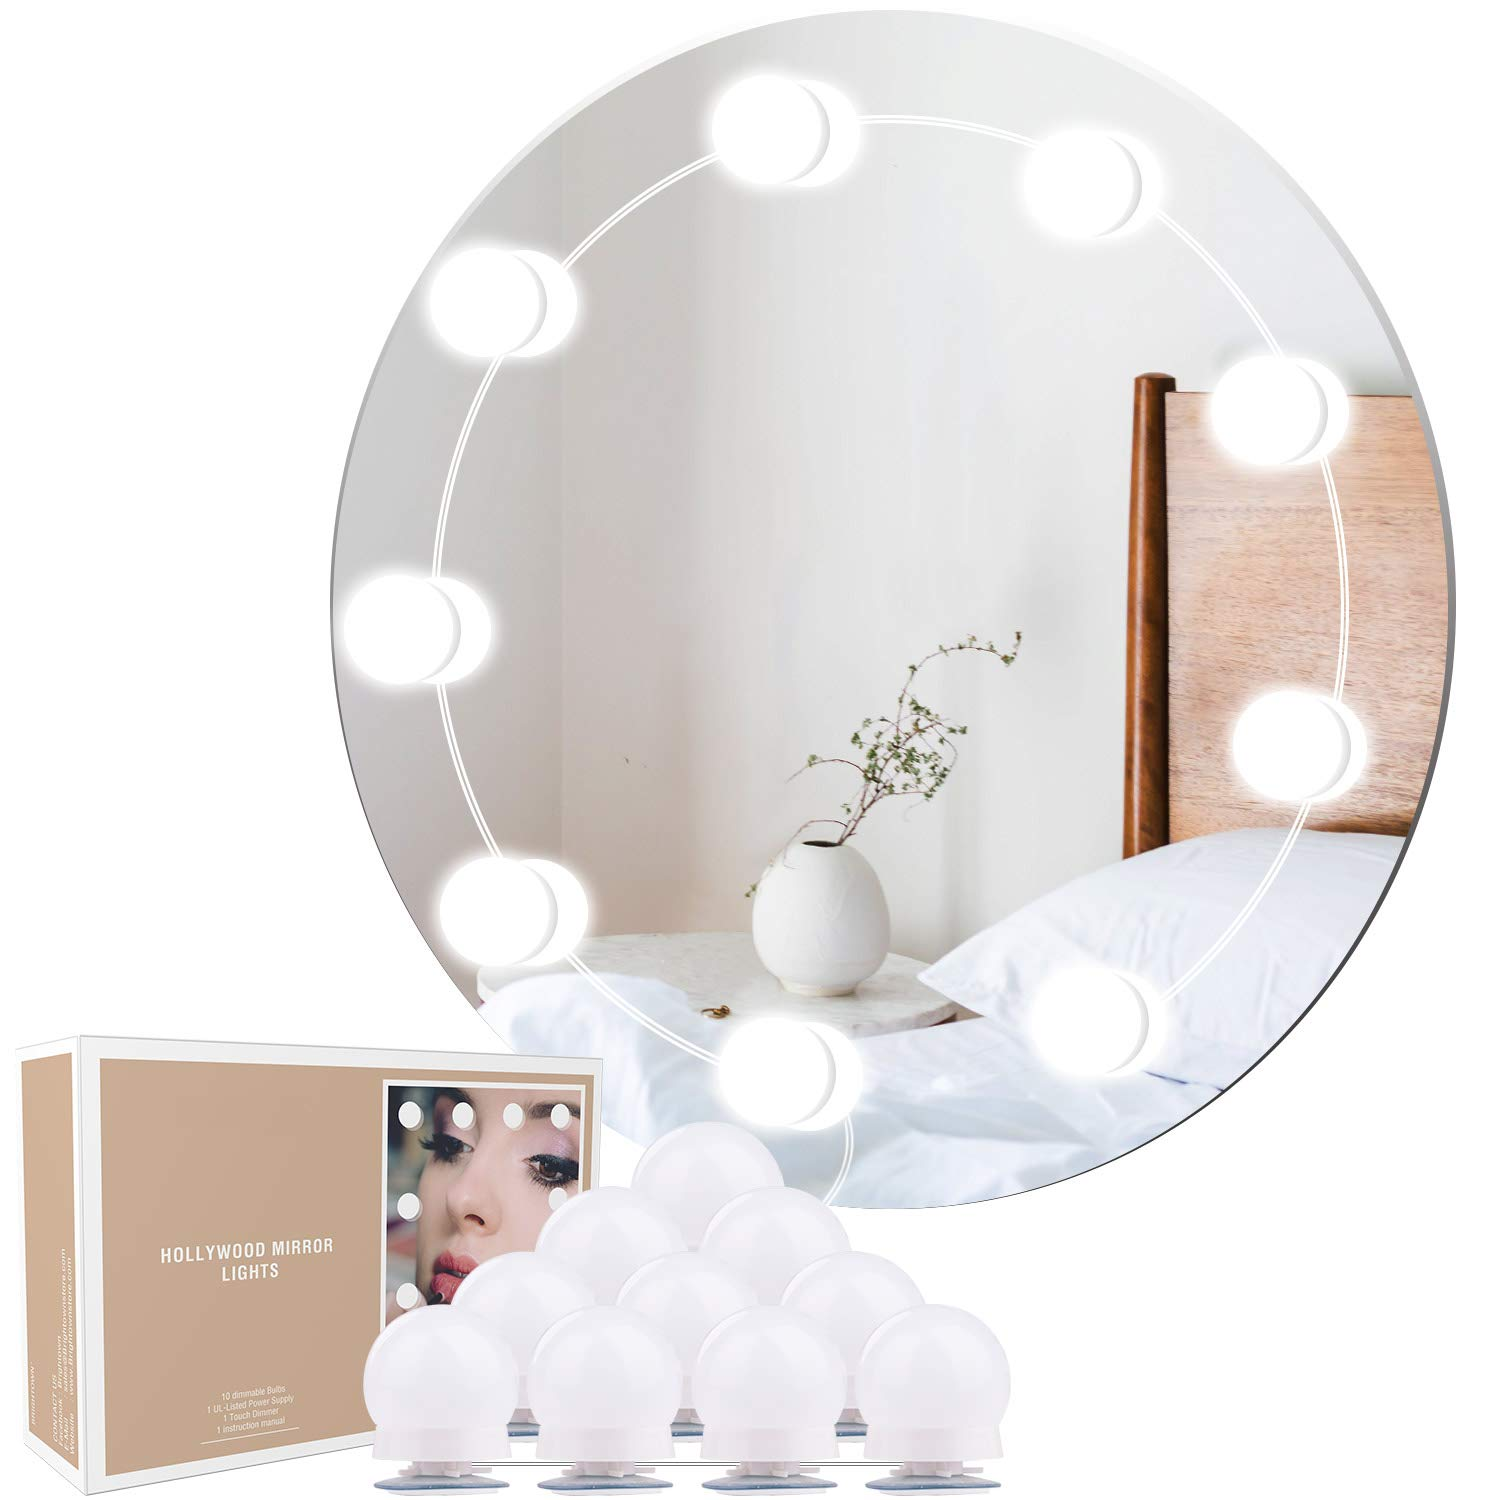 Minetom Hollywood Style Vanity Lights Kit for Vanity Mirror with Touch Dimmer, 10 LED Mirror Light Bulb Lighting Strip for Makeup Vanity Table Set in Dressing Room Bath Room (Mirror Not Include)